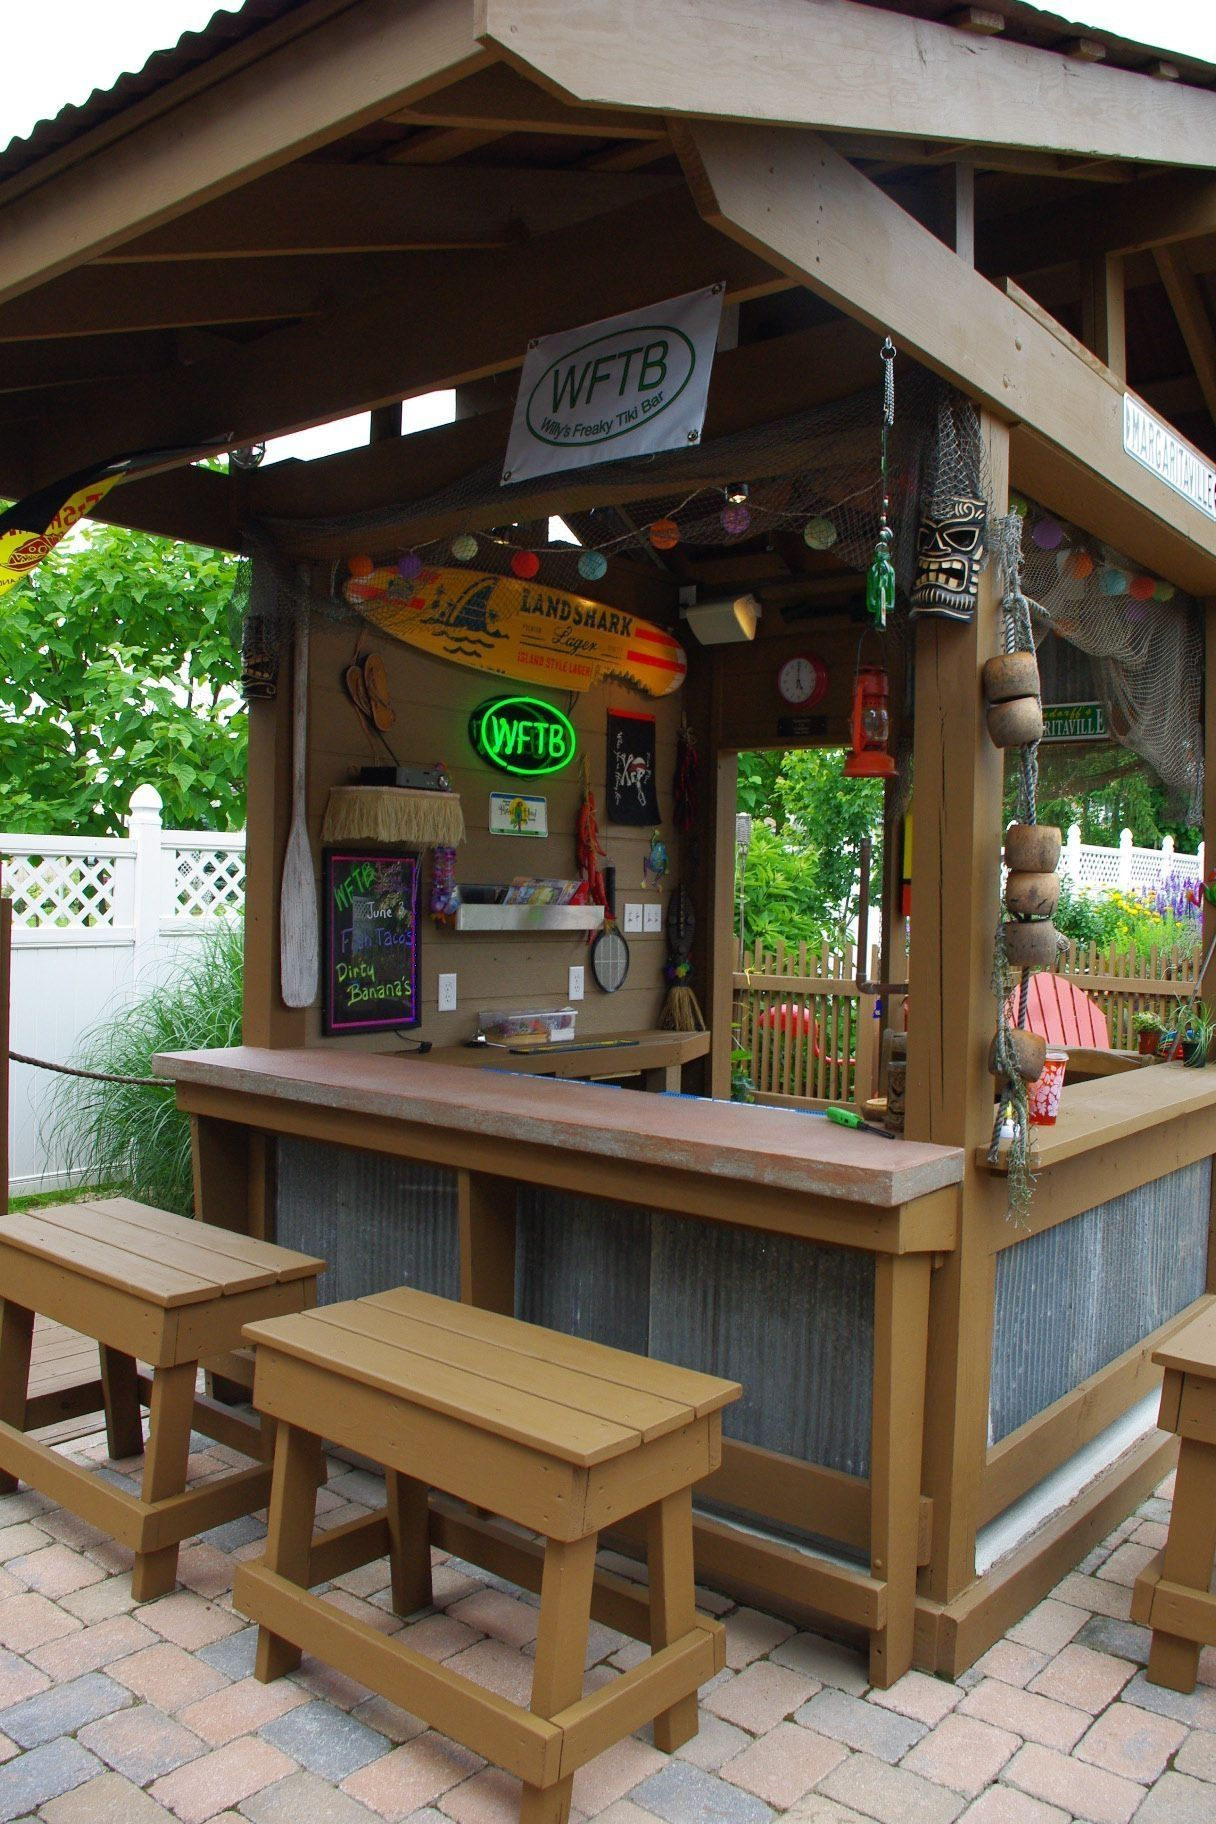 31 DIY Outdoor Bar Designs For Backyard | Backyard gazebo ... on Small Backyard Bar Ideas id=64471